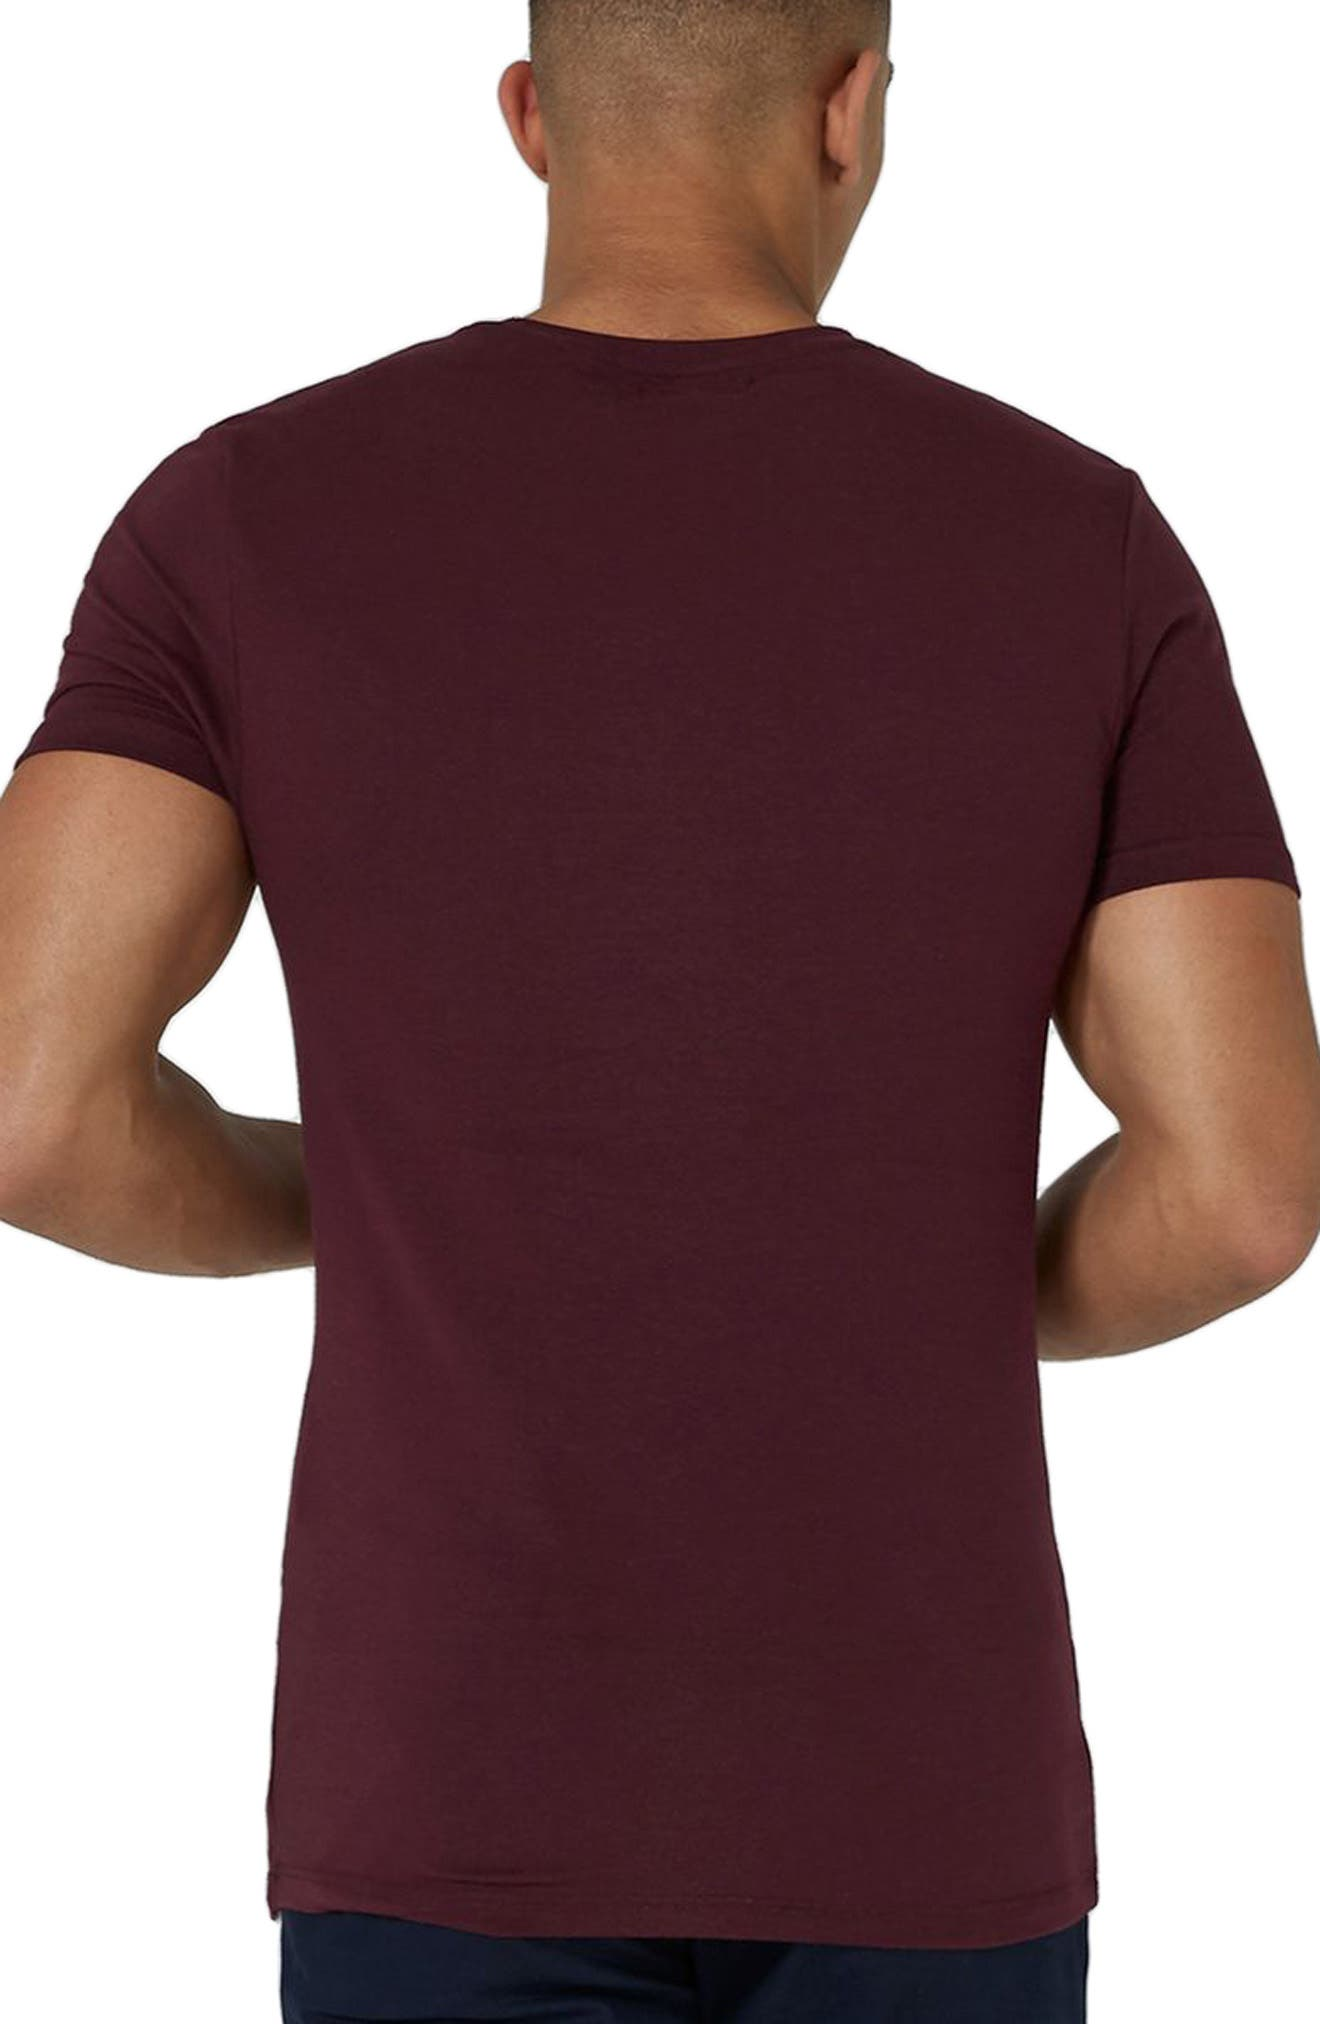 Ultra Muscle Fit T-Shirt,                             Alternate thumbnail 2, color,                             Burgundy